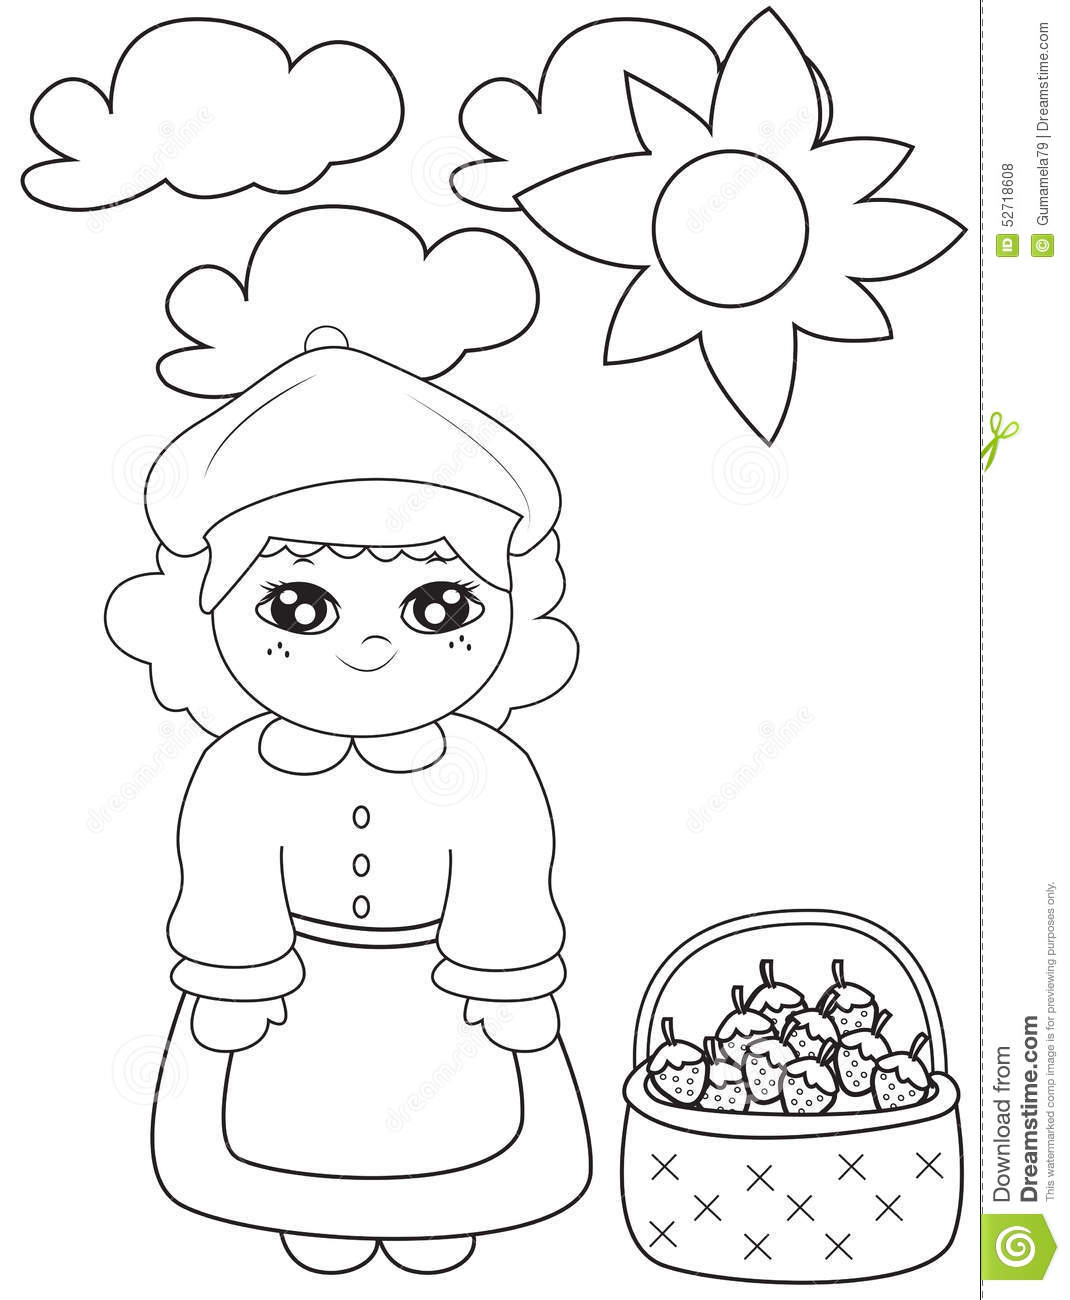 with strawberries under the sun coloring page stock